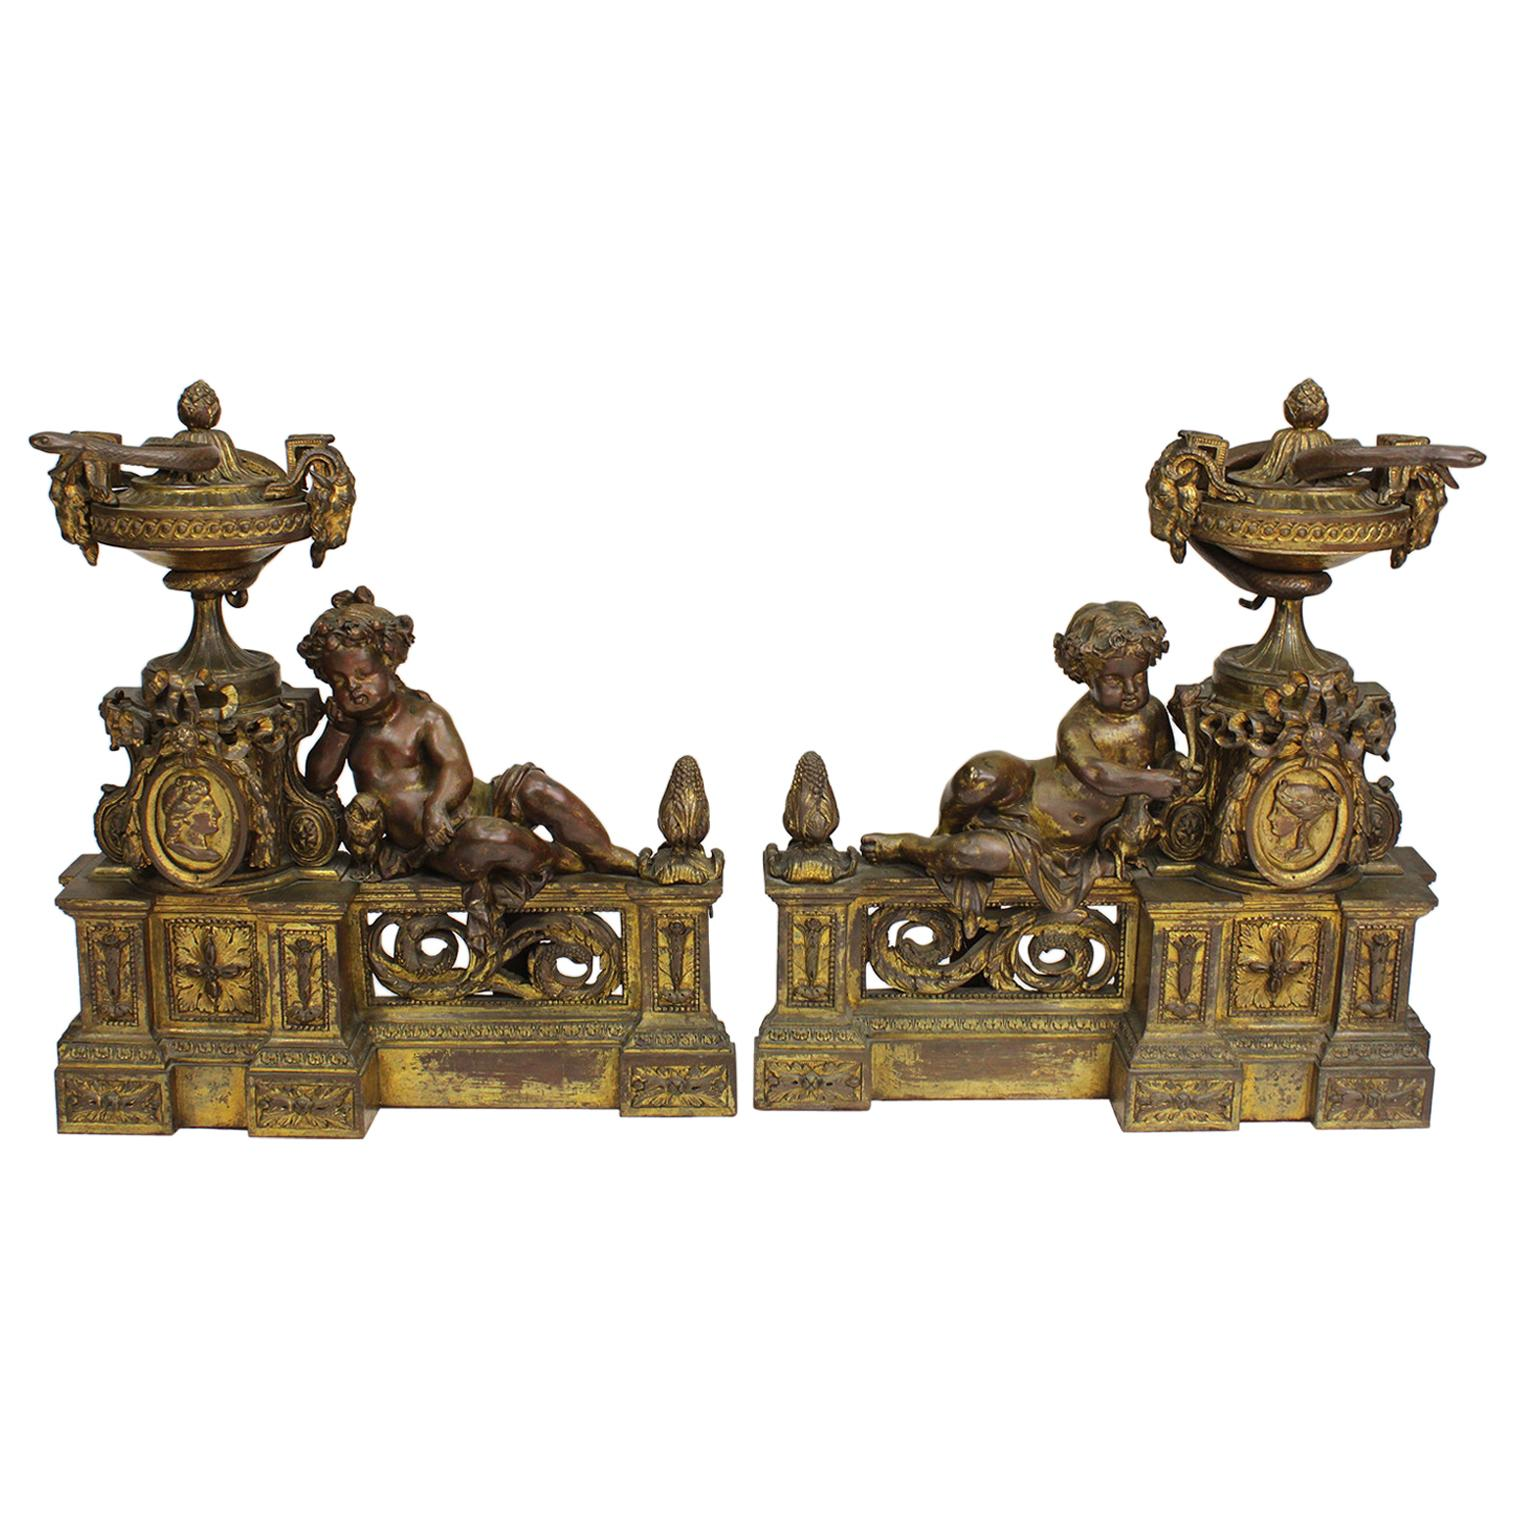 French 19th Century Louis XV Style Gilt-Bronze Chenets Andirons with Putti, Pair